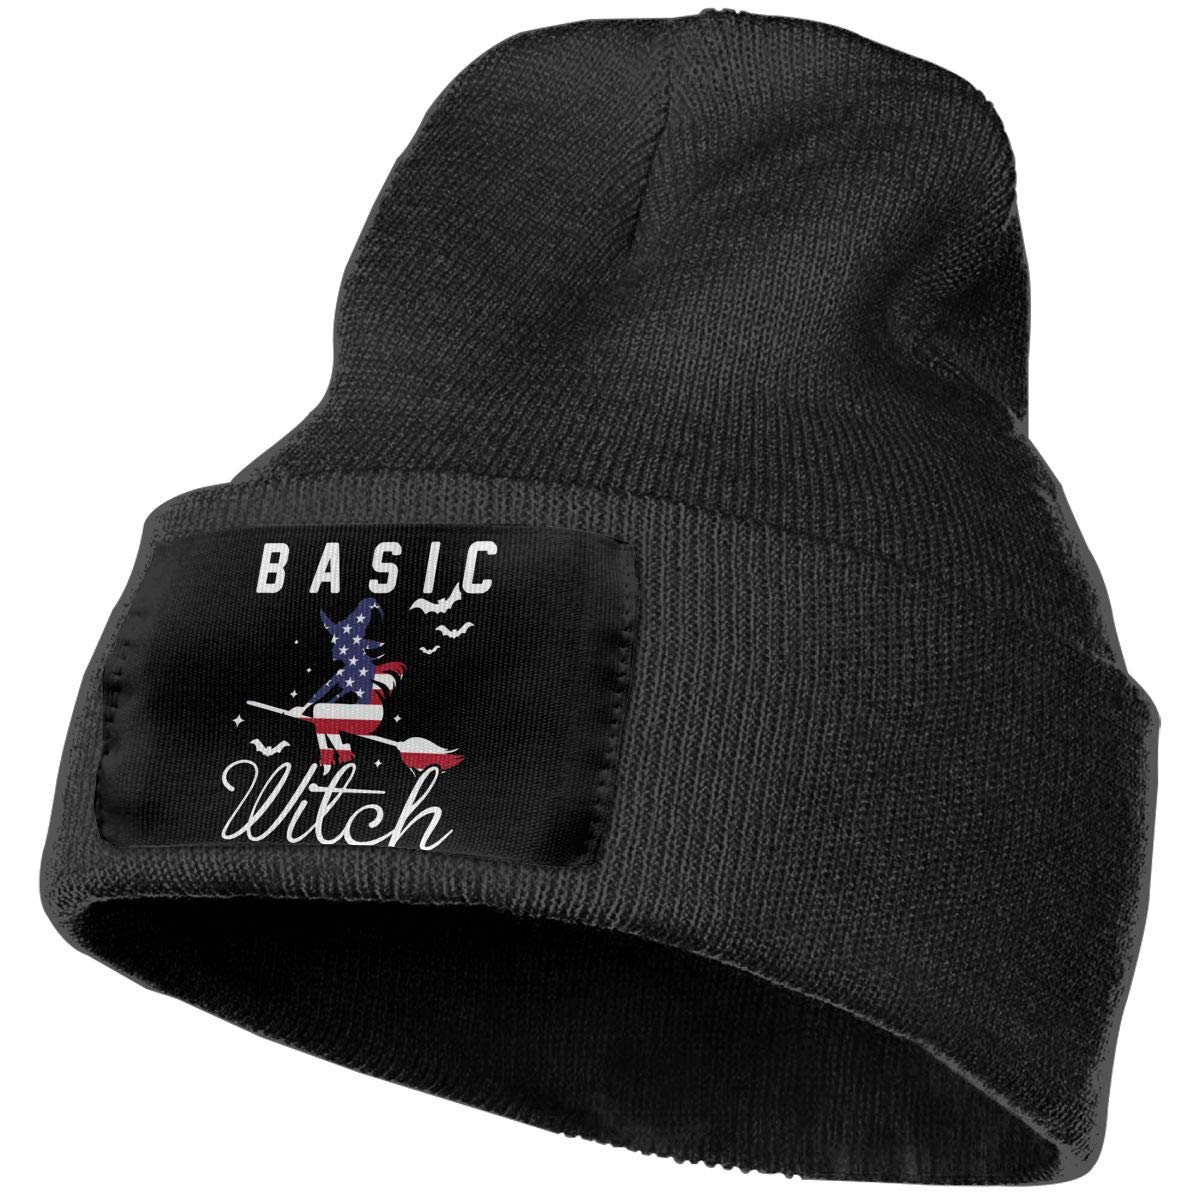 COLLJL-8 Unisex Basic Witch Halloween American Flag Outdoor Fashion Knit Beanies Hat Soft Winter Skull Caps